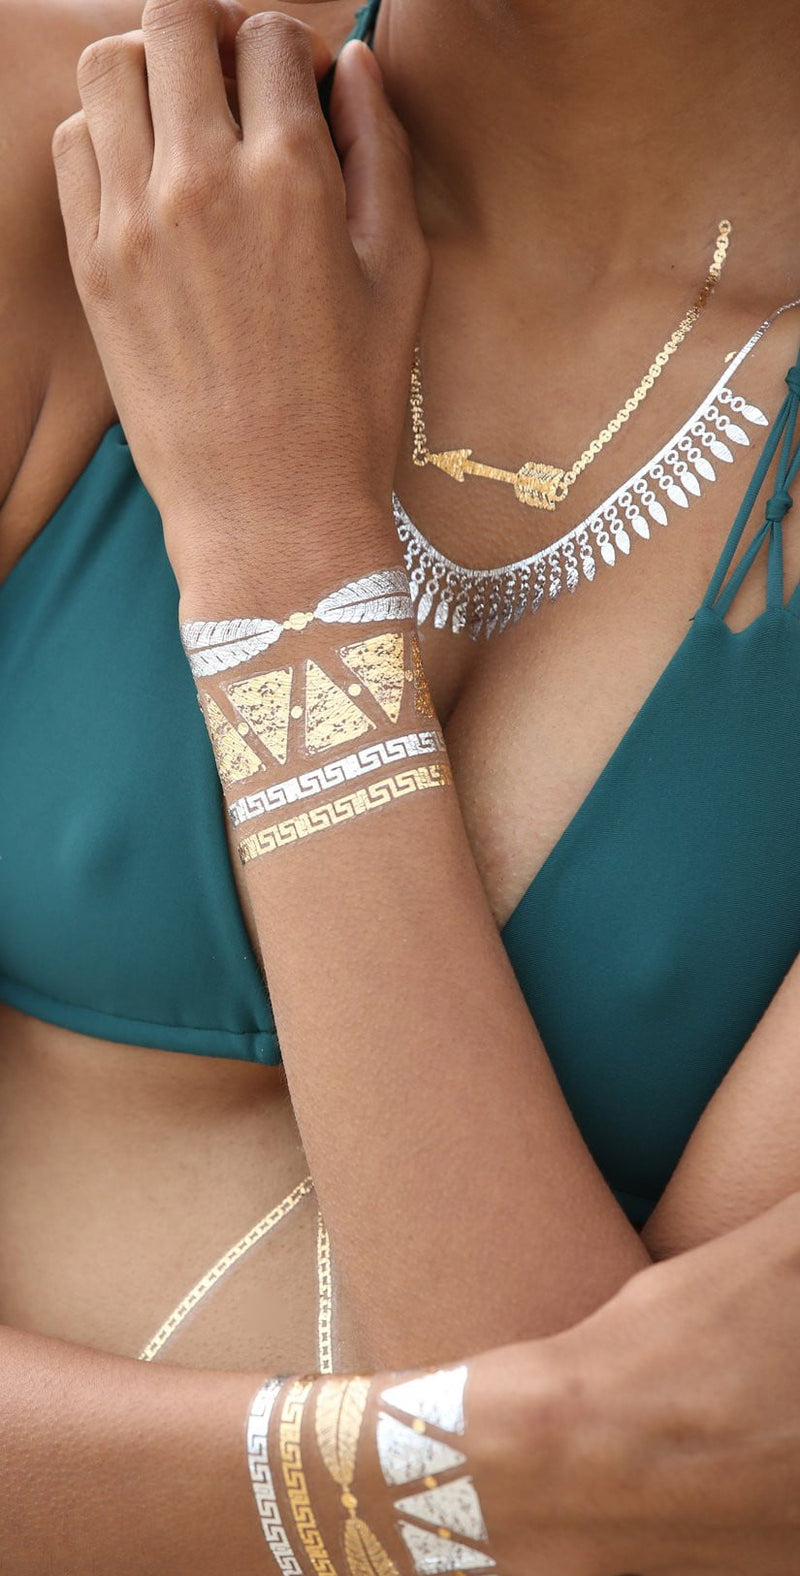 Sobe Tatts Athena Goddess Temporary Metallic Tattoos Pack: